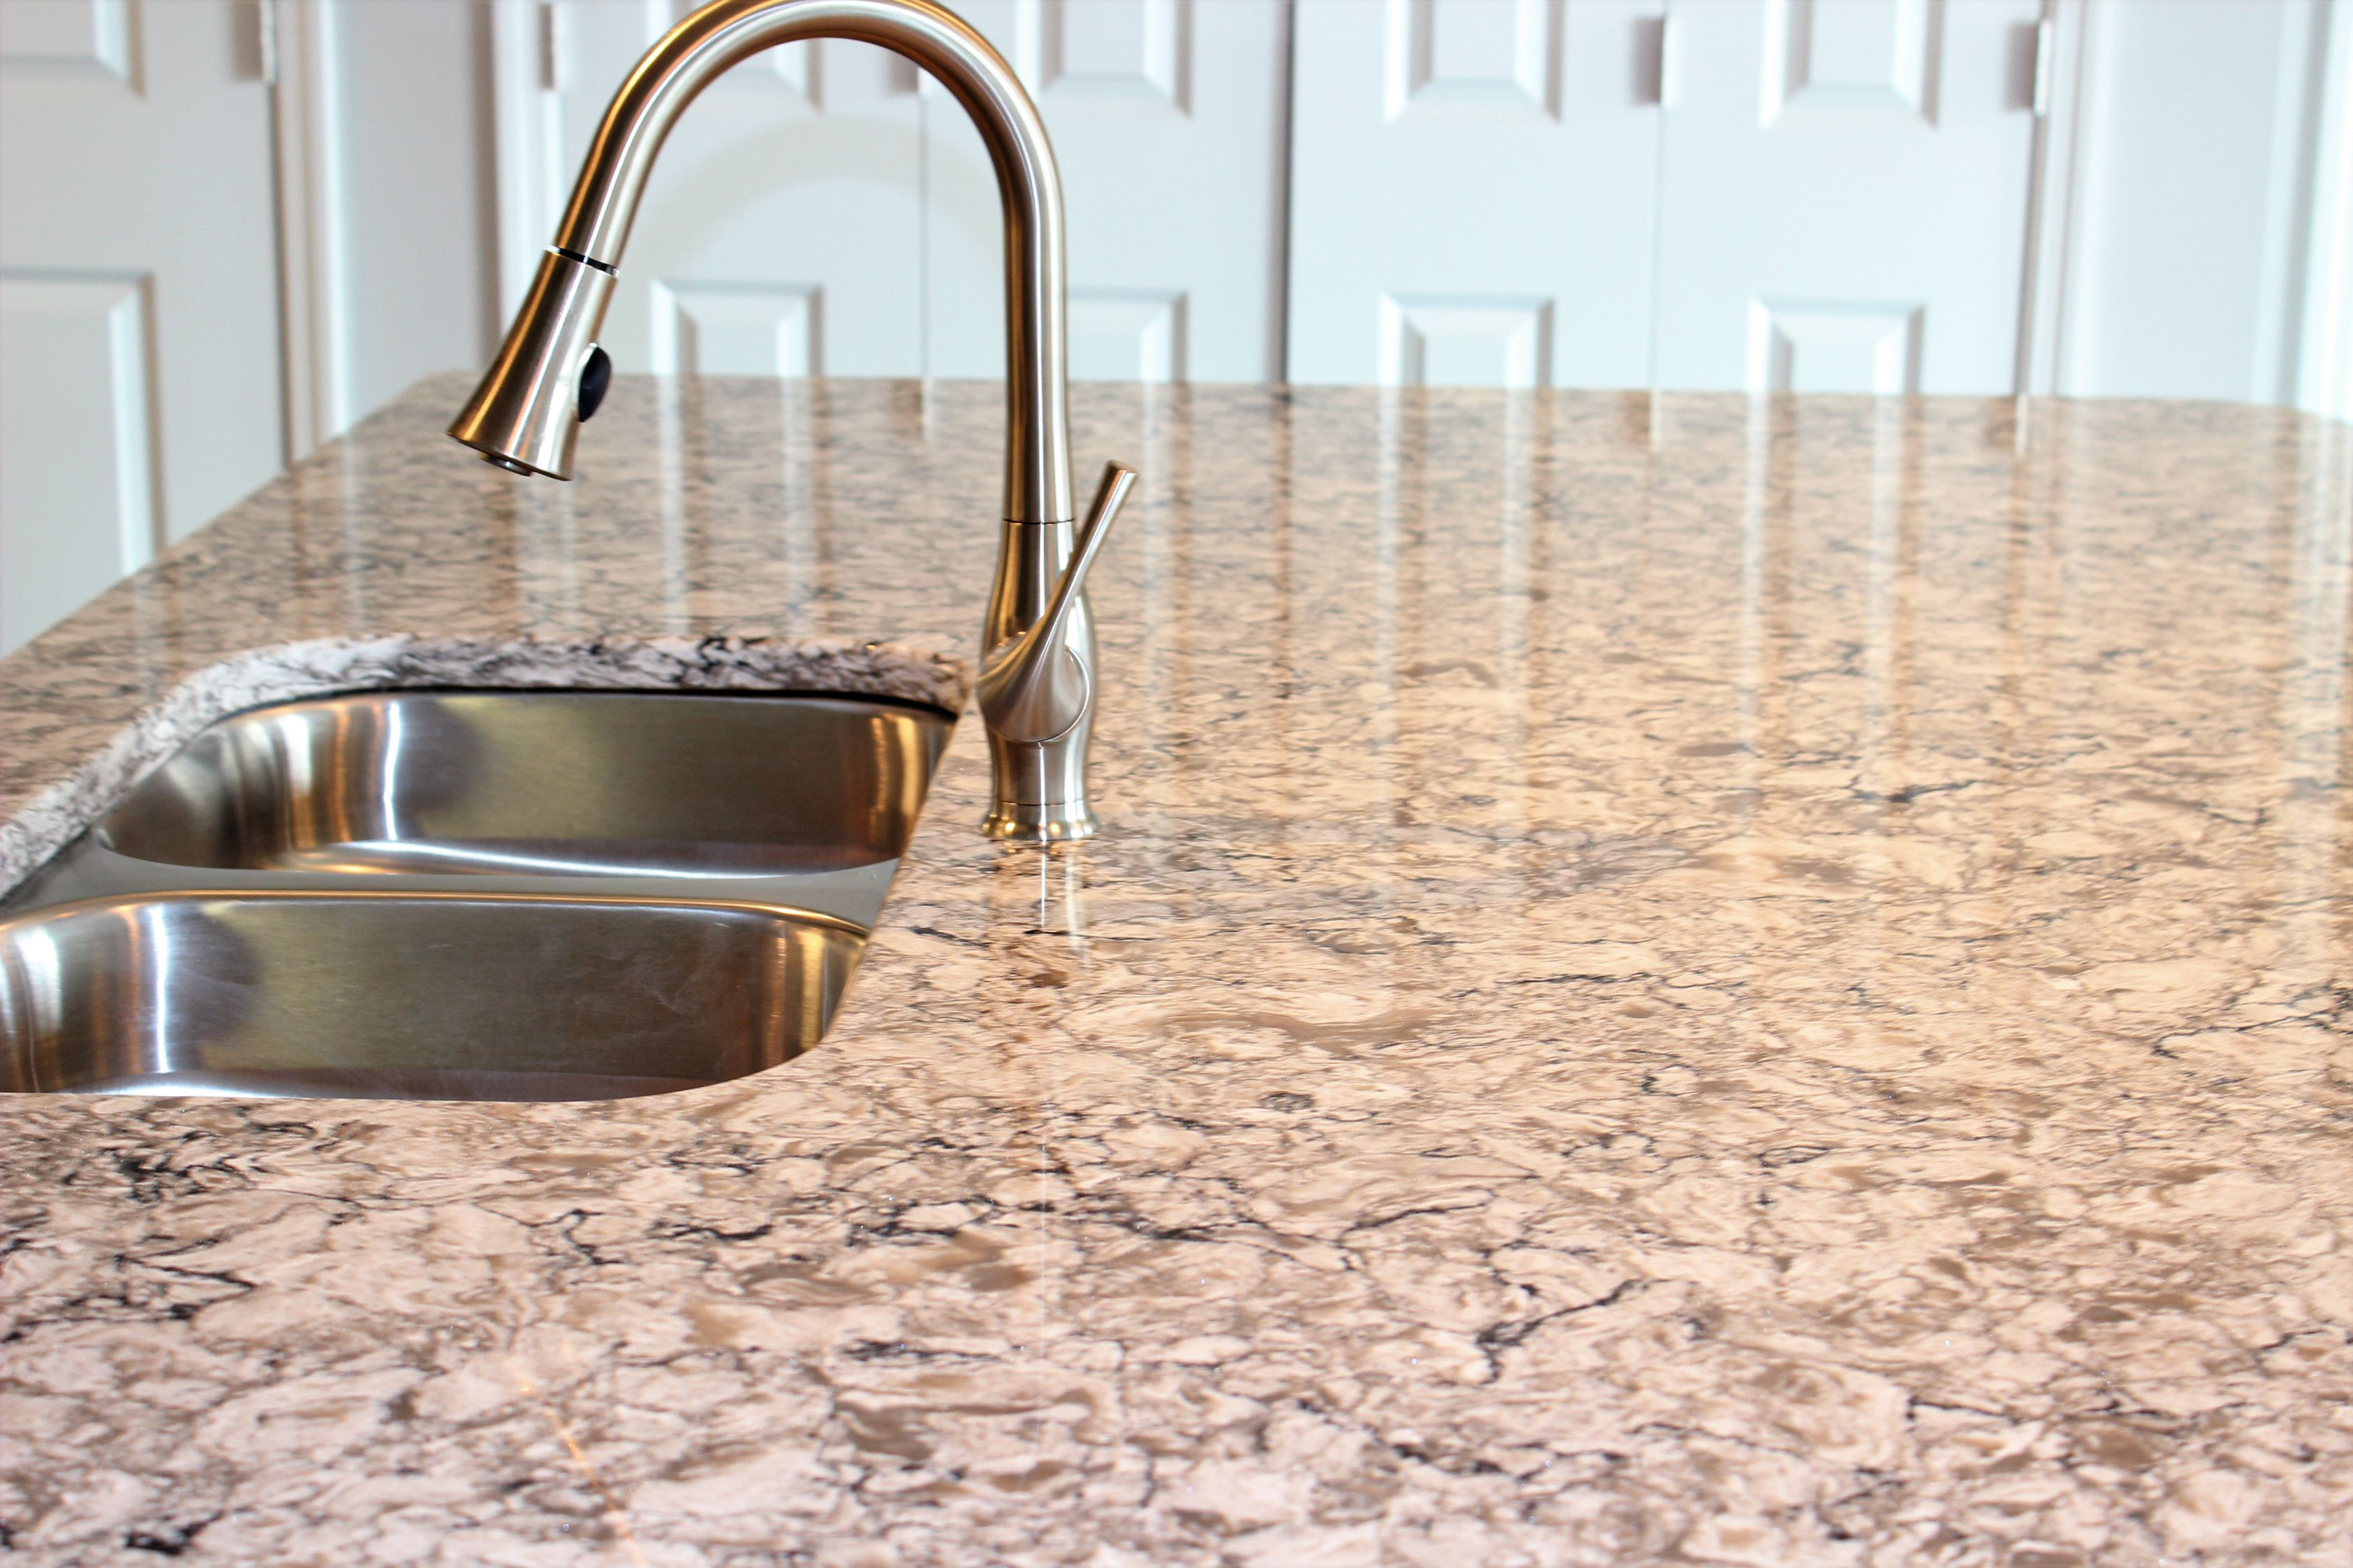 Countertops at the Vue at Creve Coeur Apartments in Creve Coeur, MO